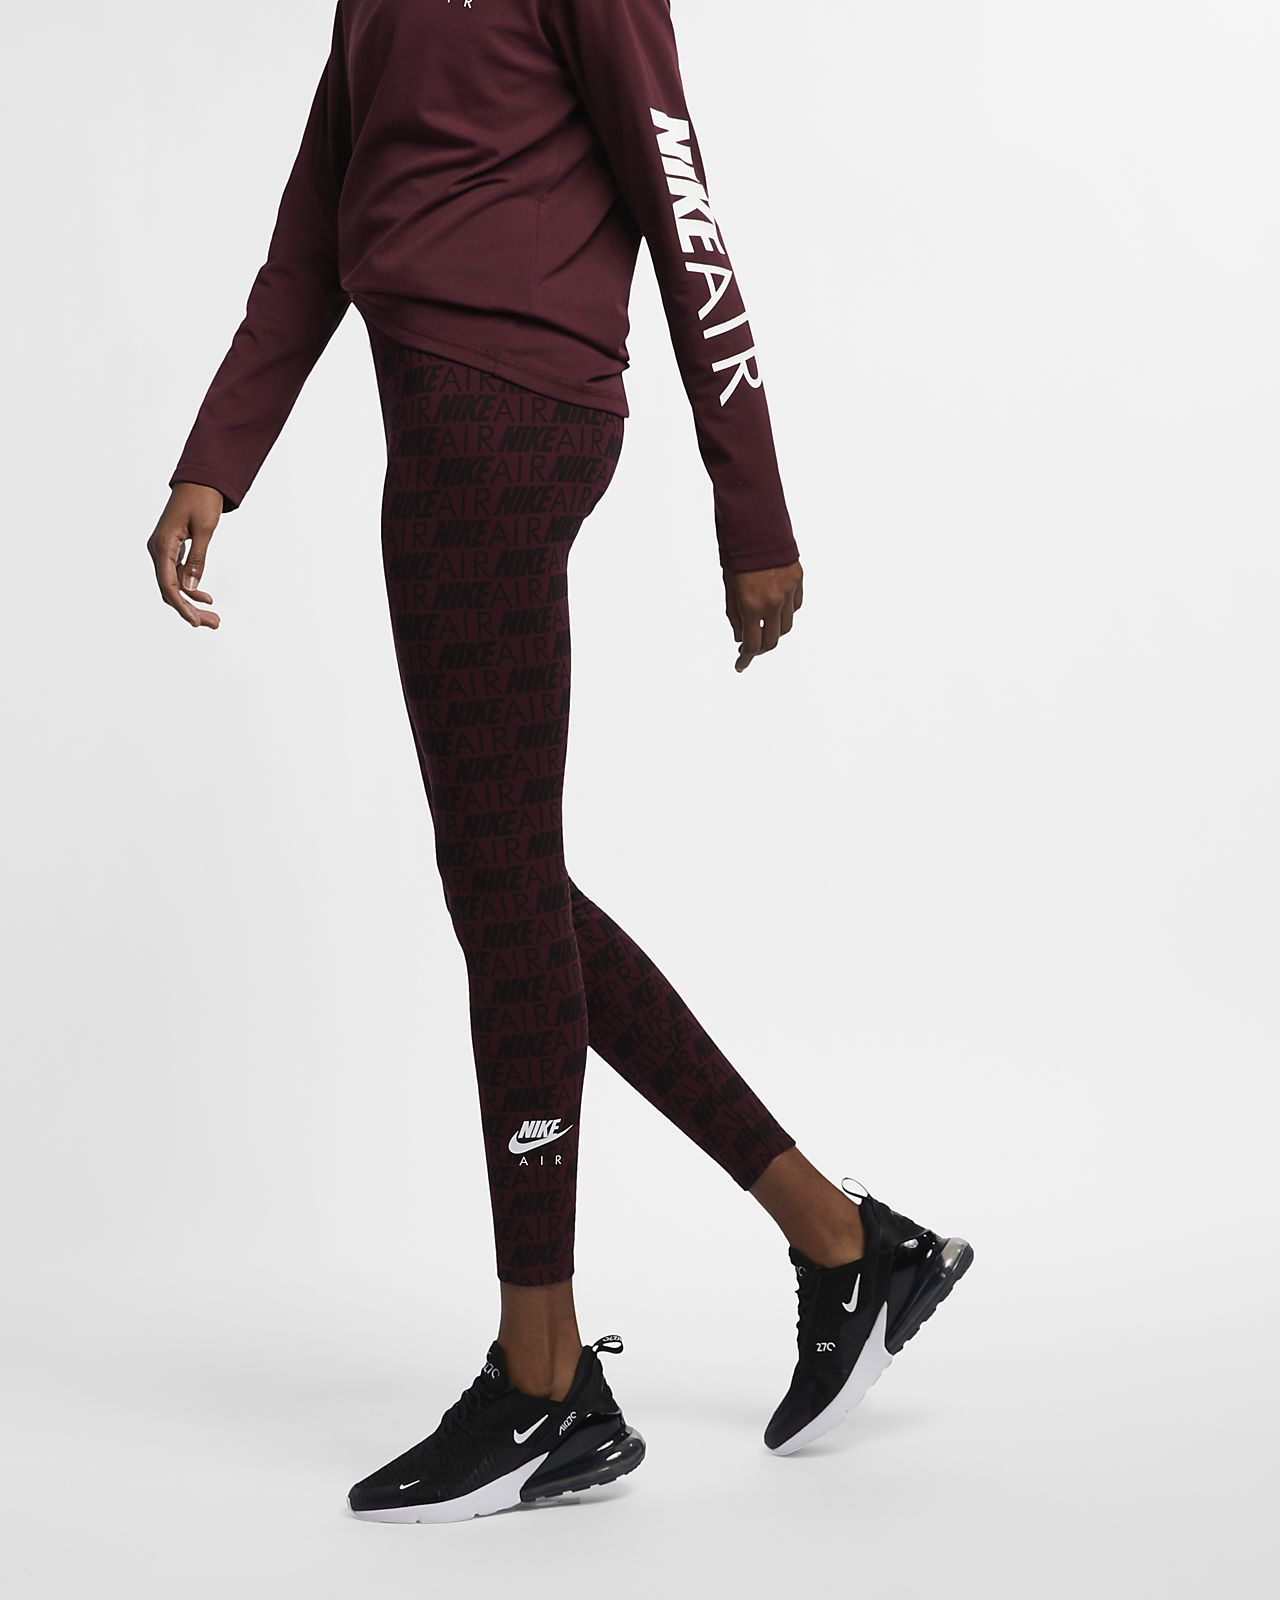 5ef1a689c511c Low Resolution Nike Air Women's Printed Leggings Nike Air Women's Printed  Leggings